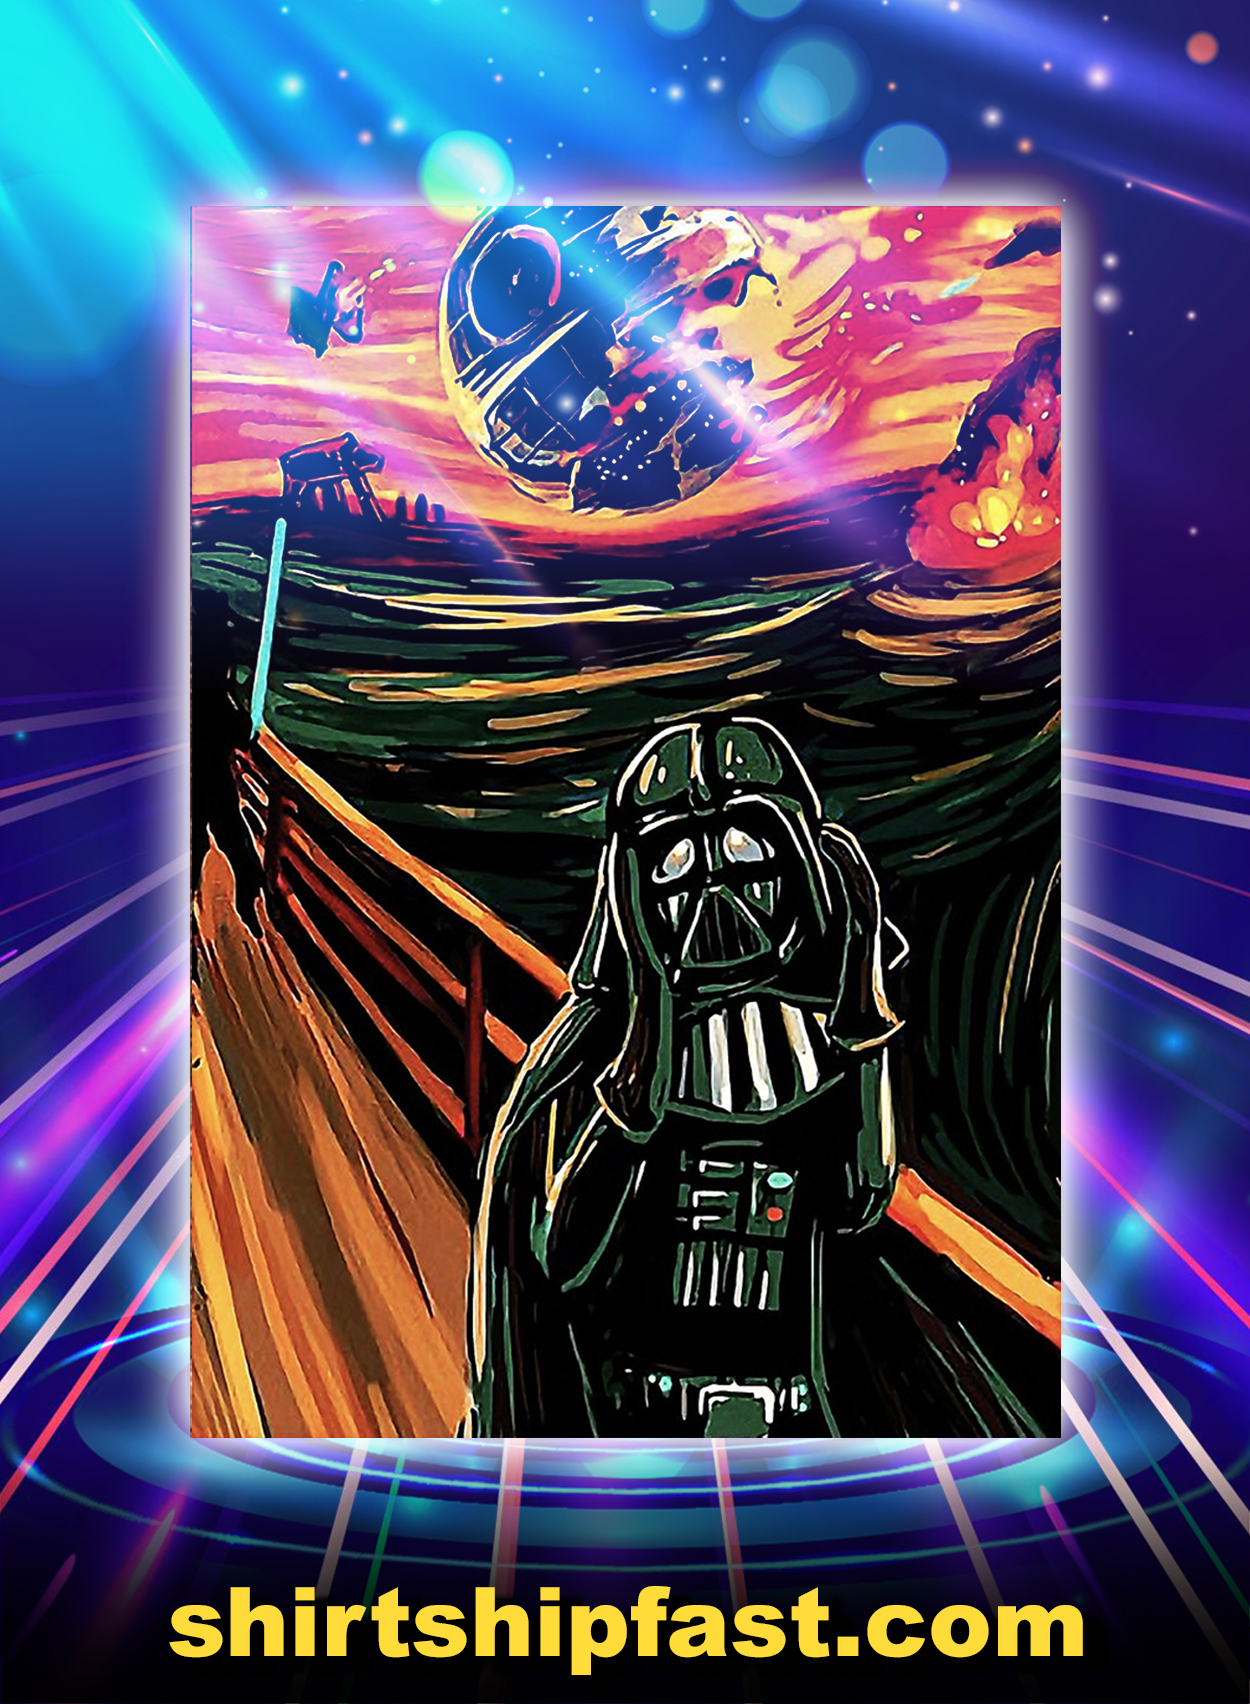 Darth vader and death star scream poster - A2